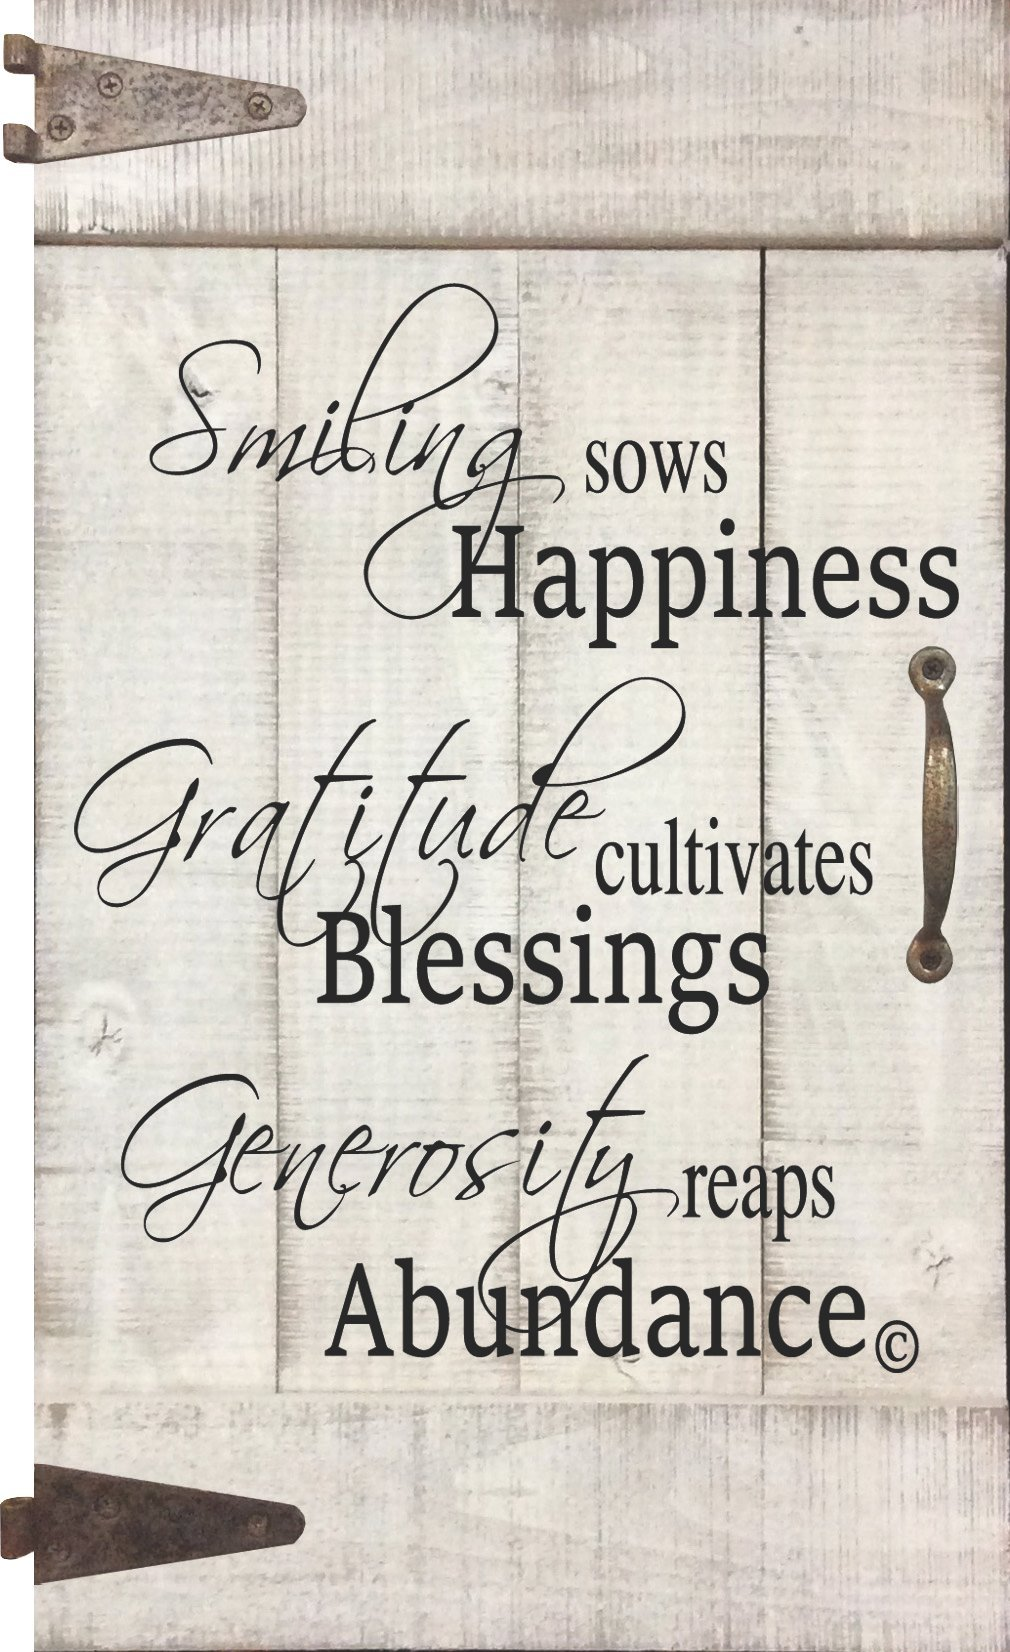 From My Mama's Kitchen - Happiness Blessings Abundance - a graceful reminder of how our Smile creates happiness, expressing Gratitude invites blessings, and having a Generous heart leads to abundance